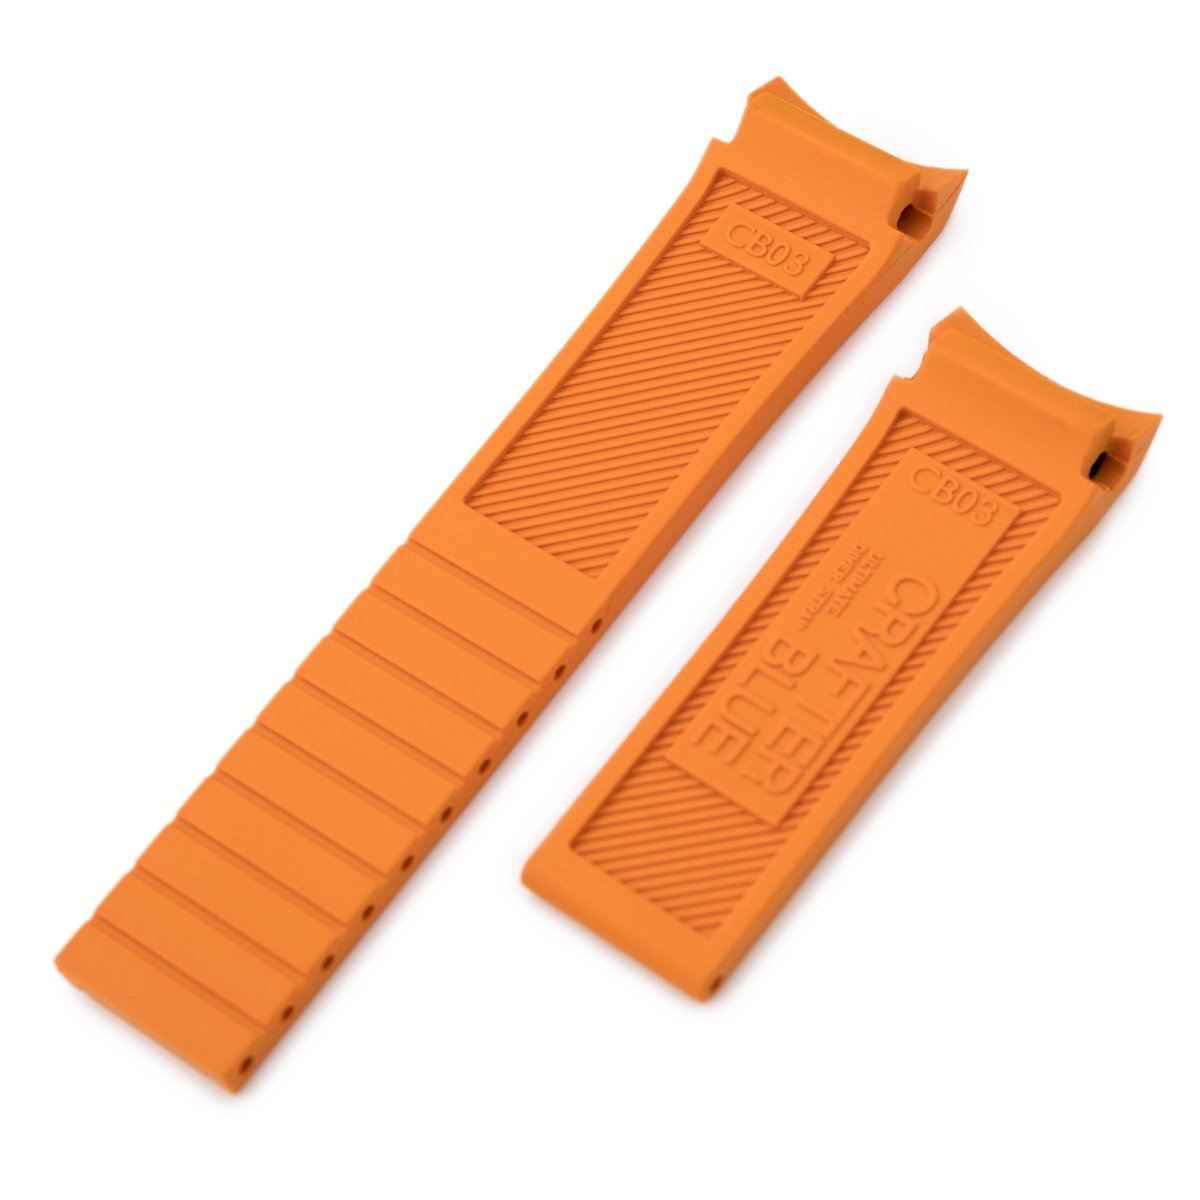 20mm Crafter Blue Orange Rubber Curved Lug Watch Band for Seiko MM300 Prospex Marinemaster SBDX001 Strapcode Watch Bands